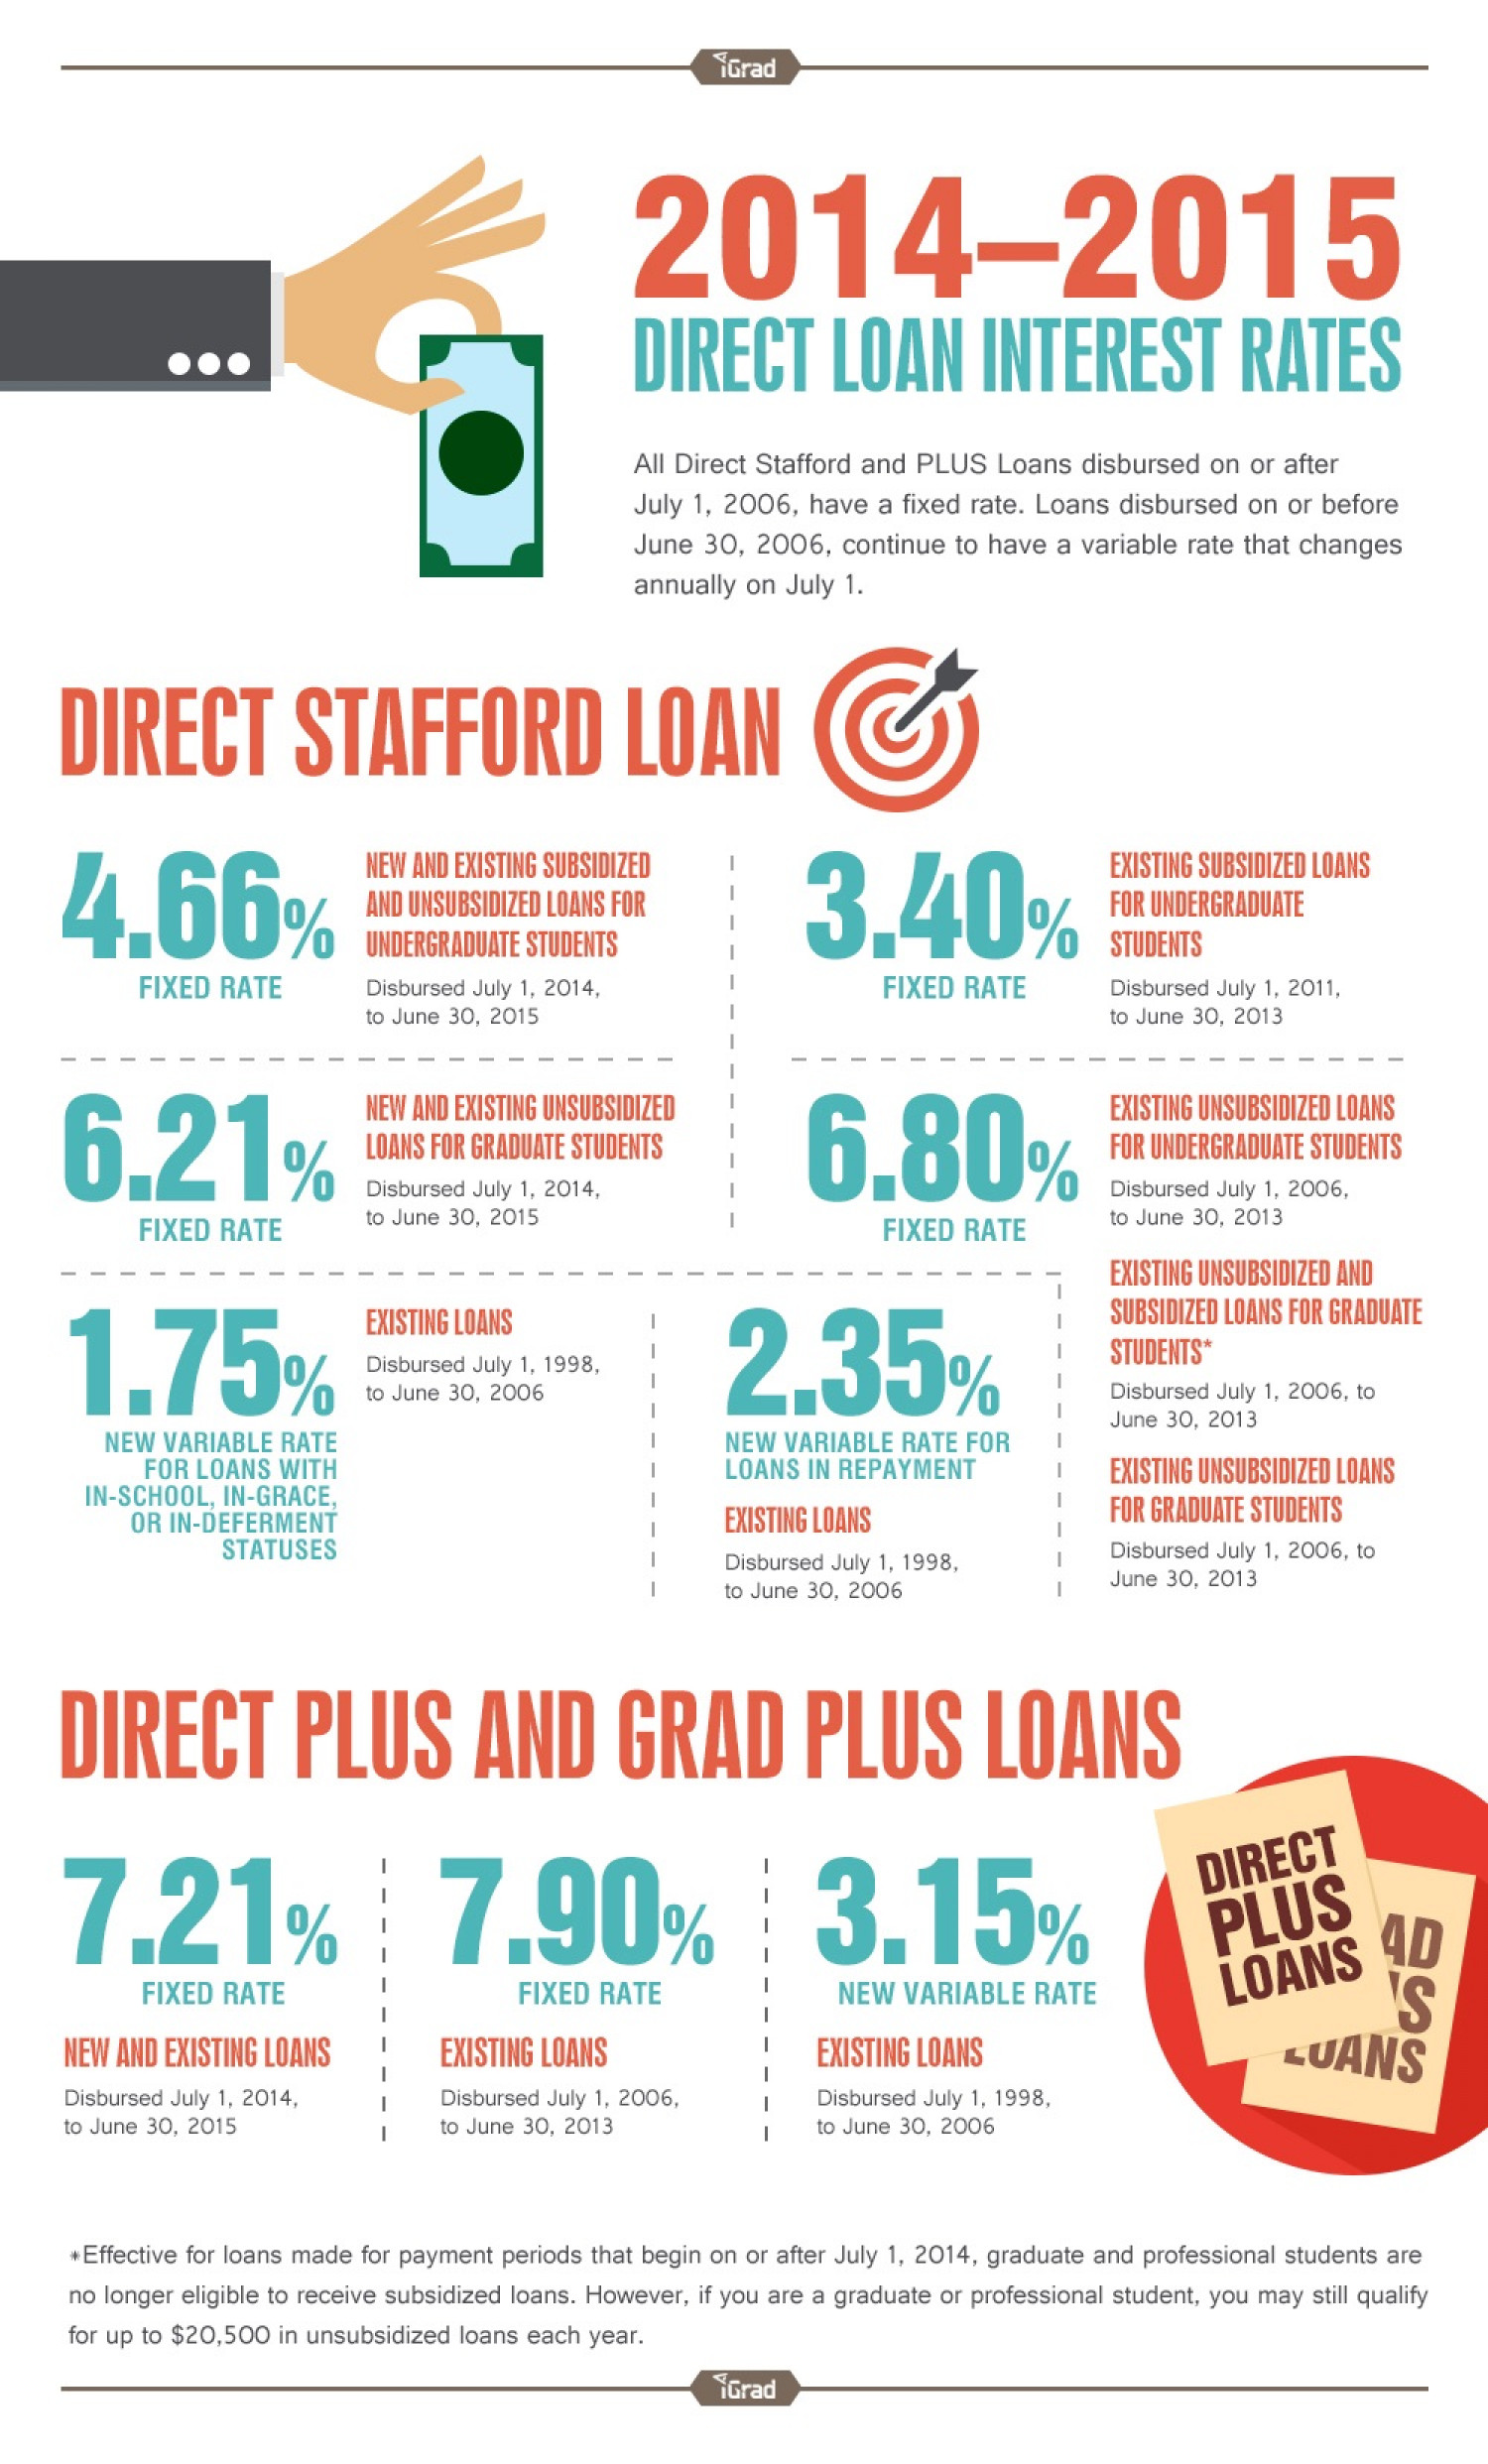 Direct Loan Interest Rates (2014-2015) Infographic